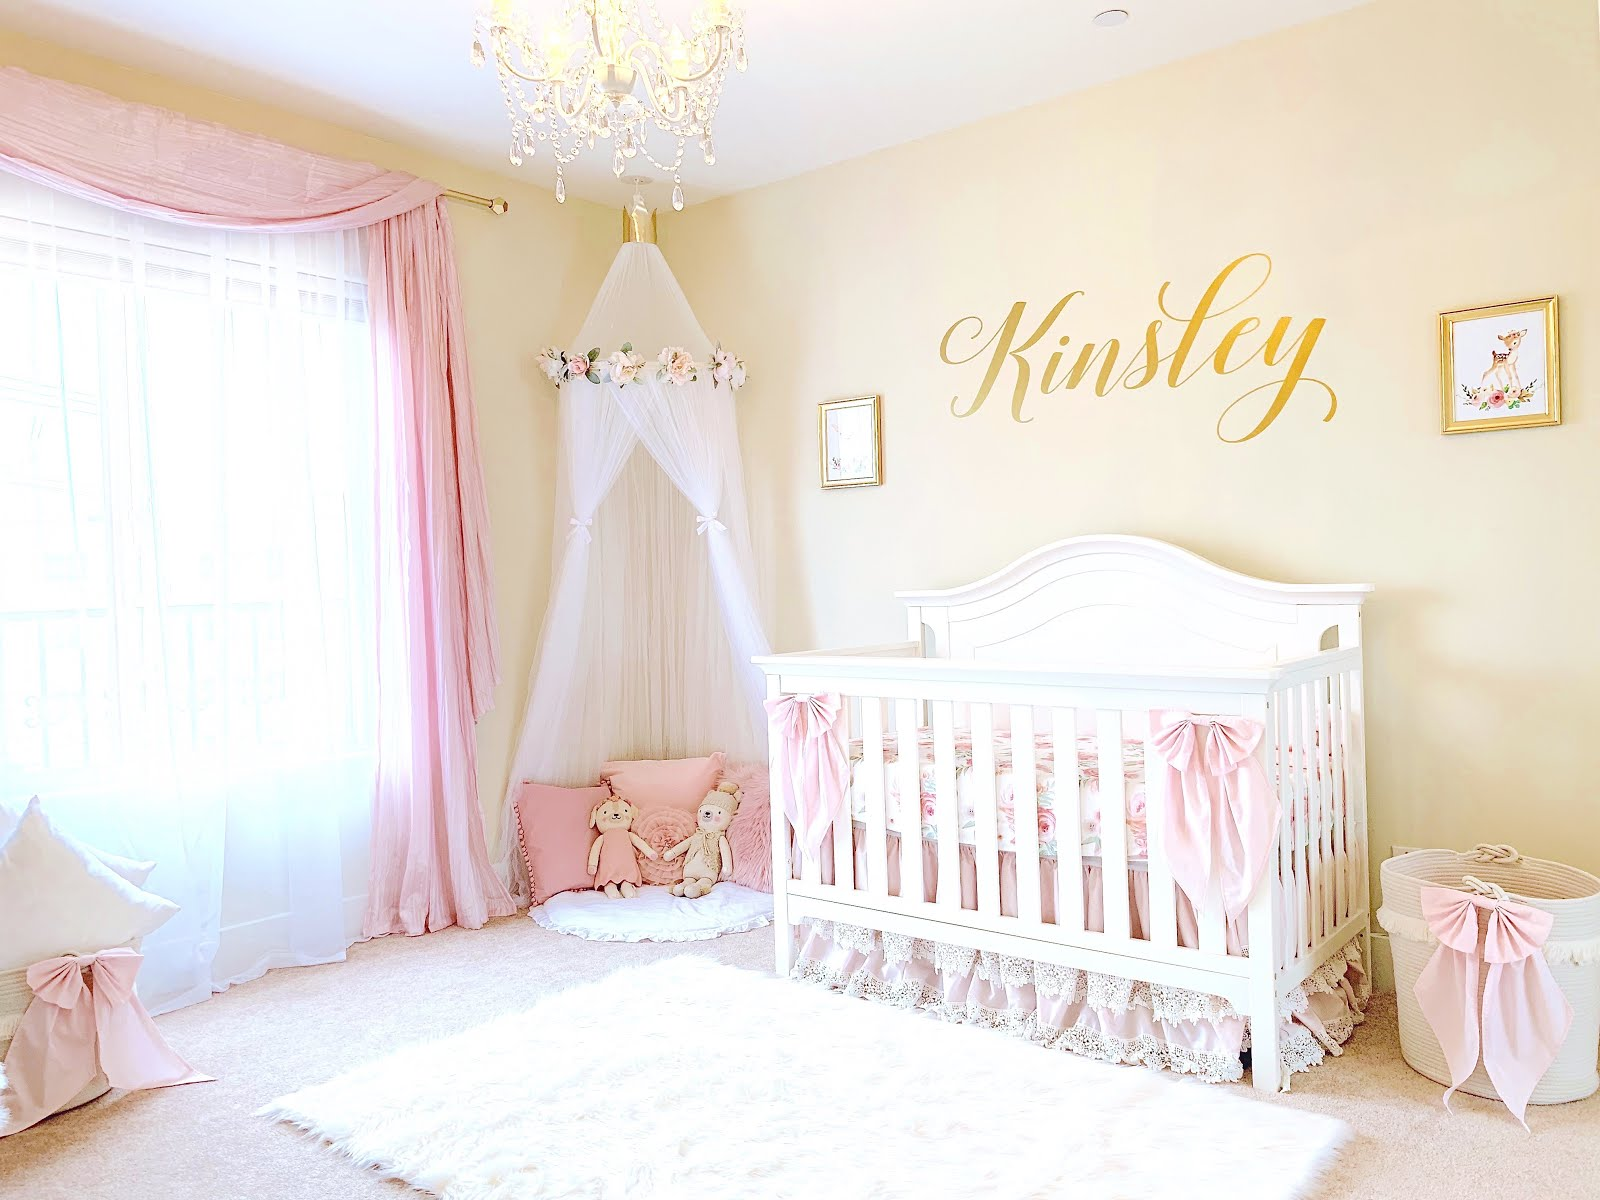 VIDEO} Nursery Reveal! | Pink & Gold Baby Girl Room Tour - The Lindsay Ann